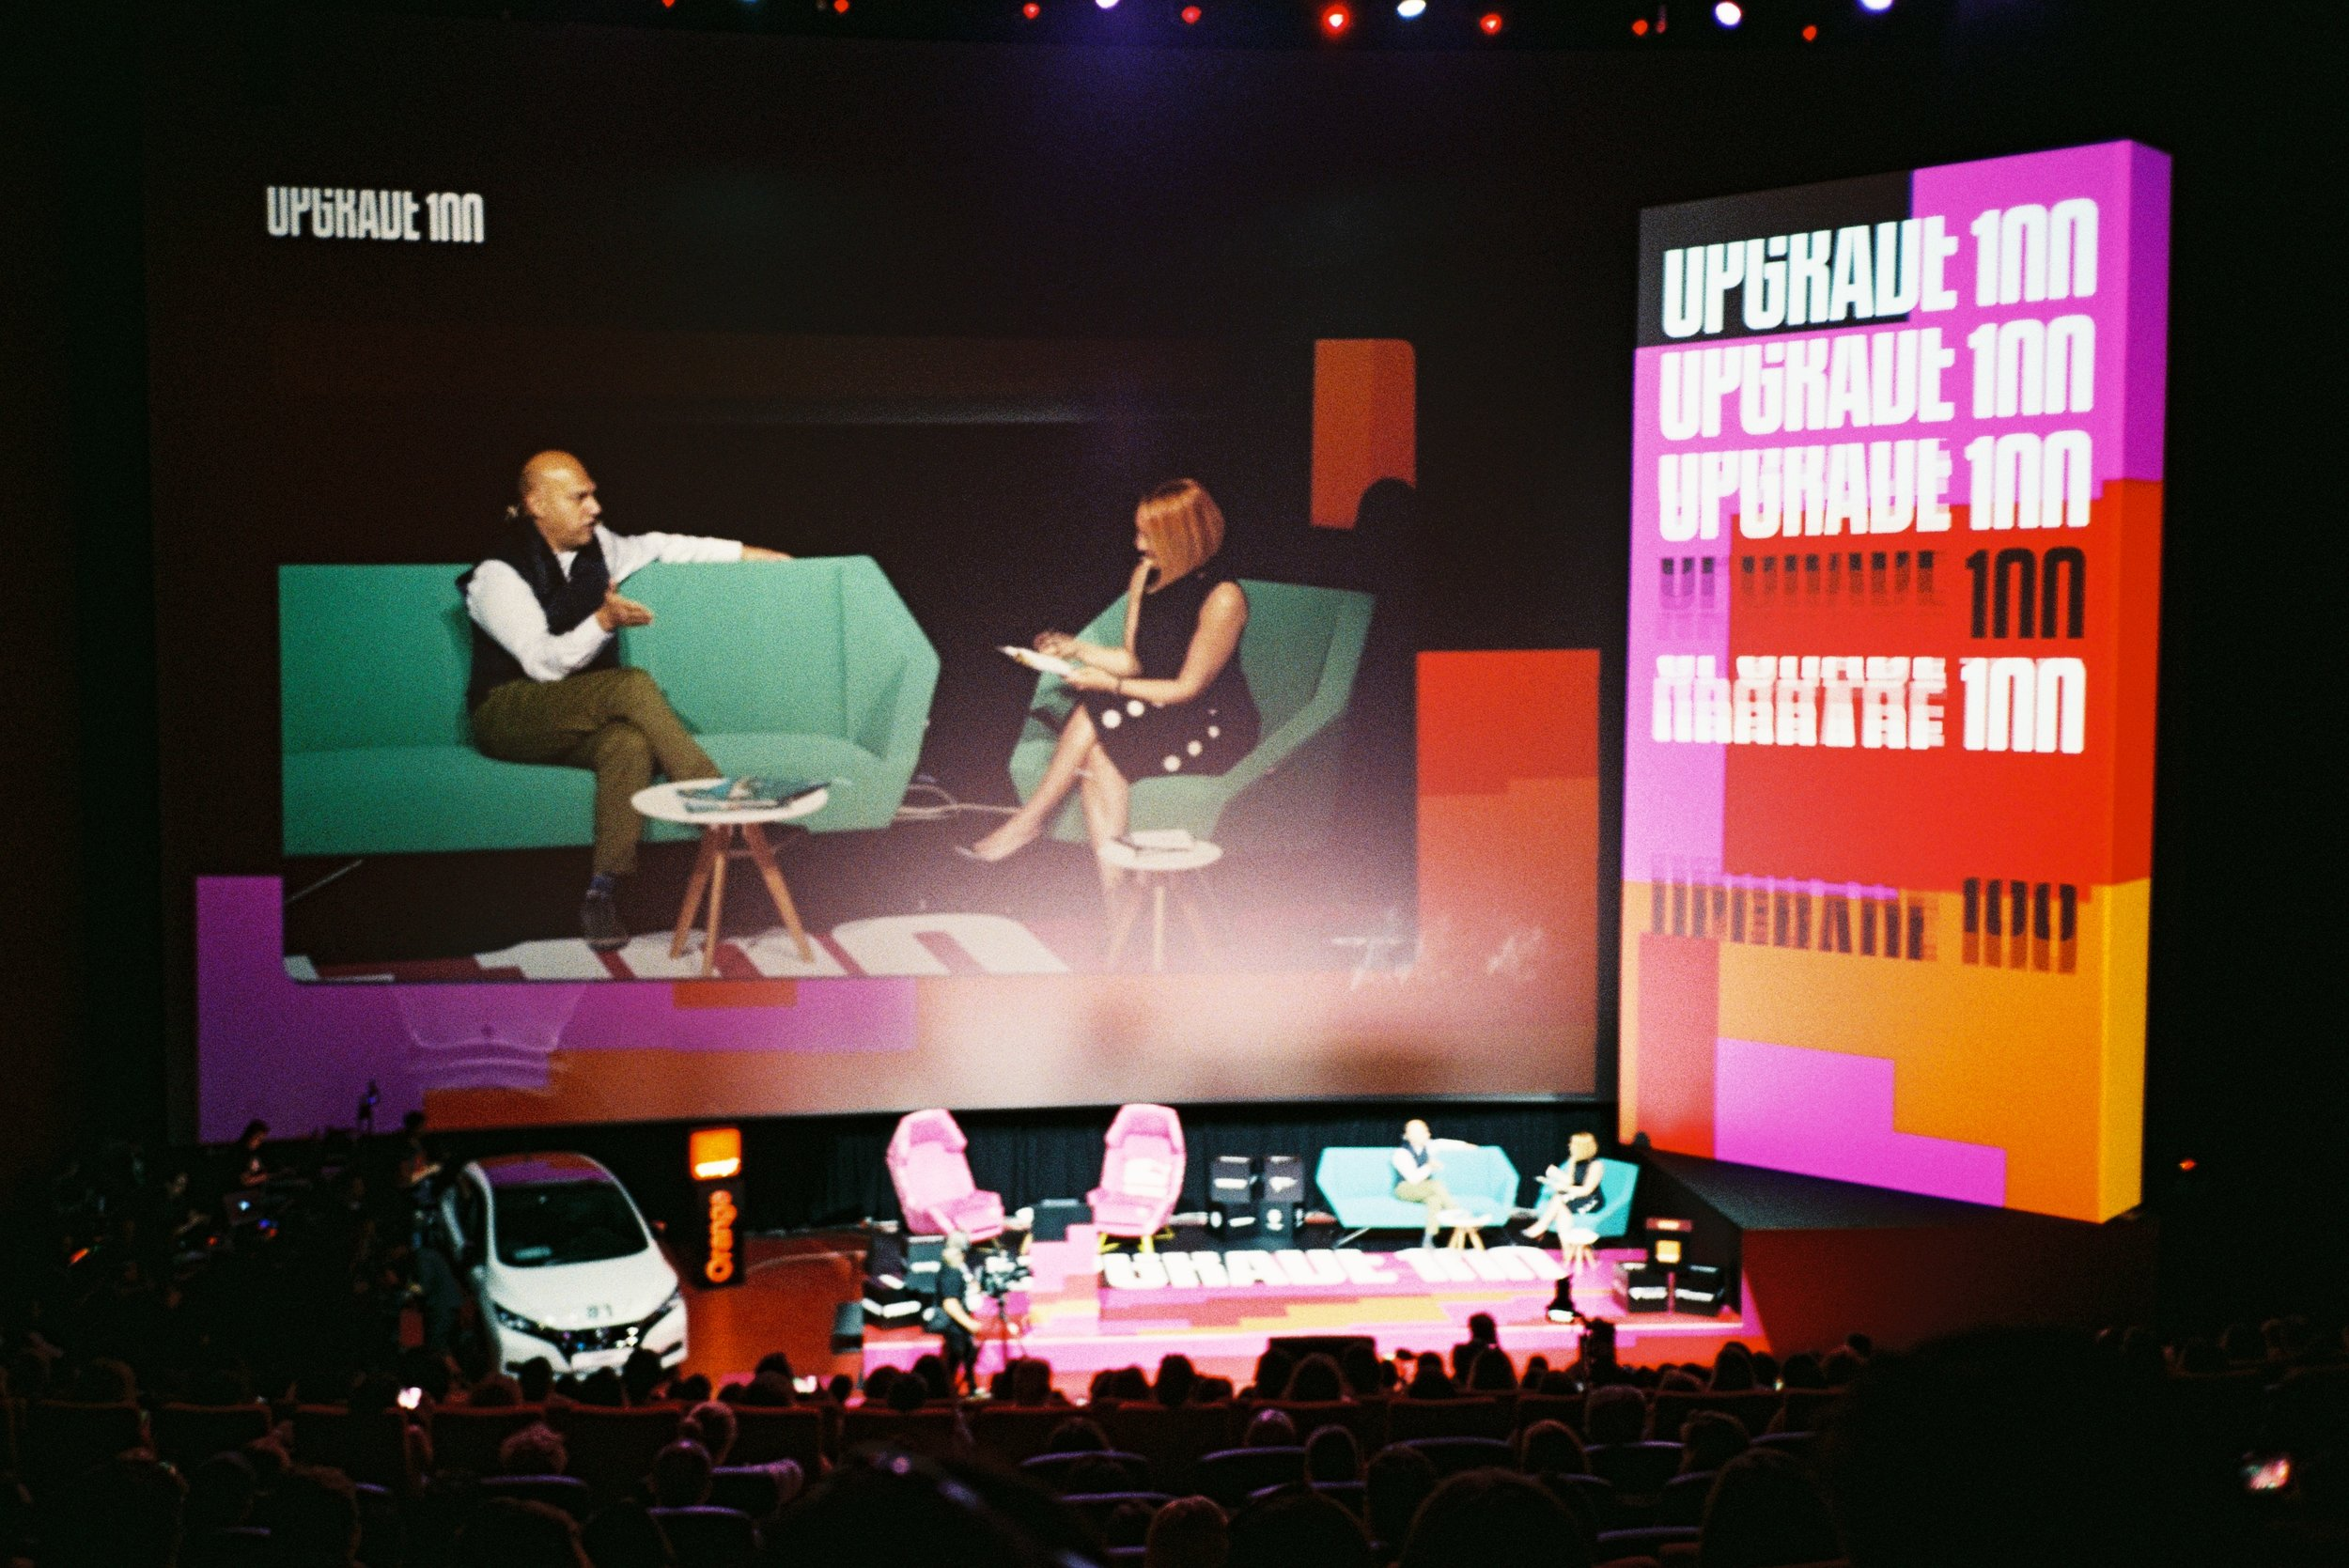 Salim Ismail interviewed by Andreea Esca on the main stage of Upgrade 100 in Bucharest, 14 June 2019. Shot on ISO 200 Fuji film with Olympus Mju II.